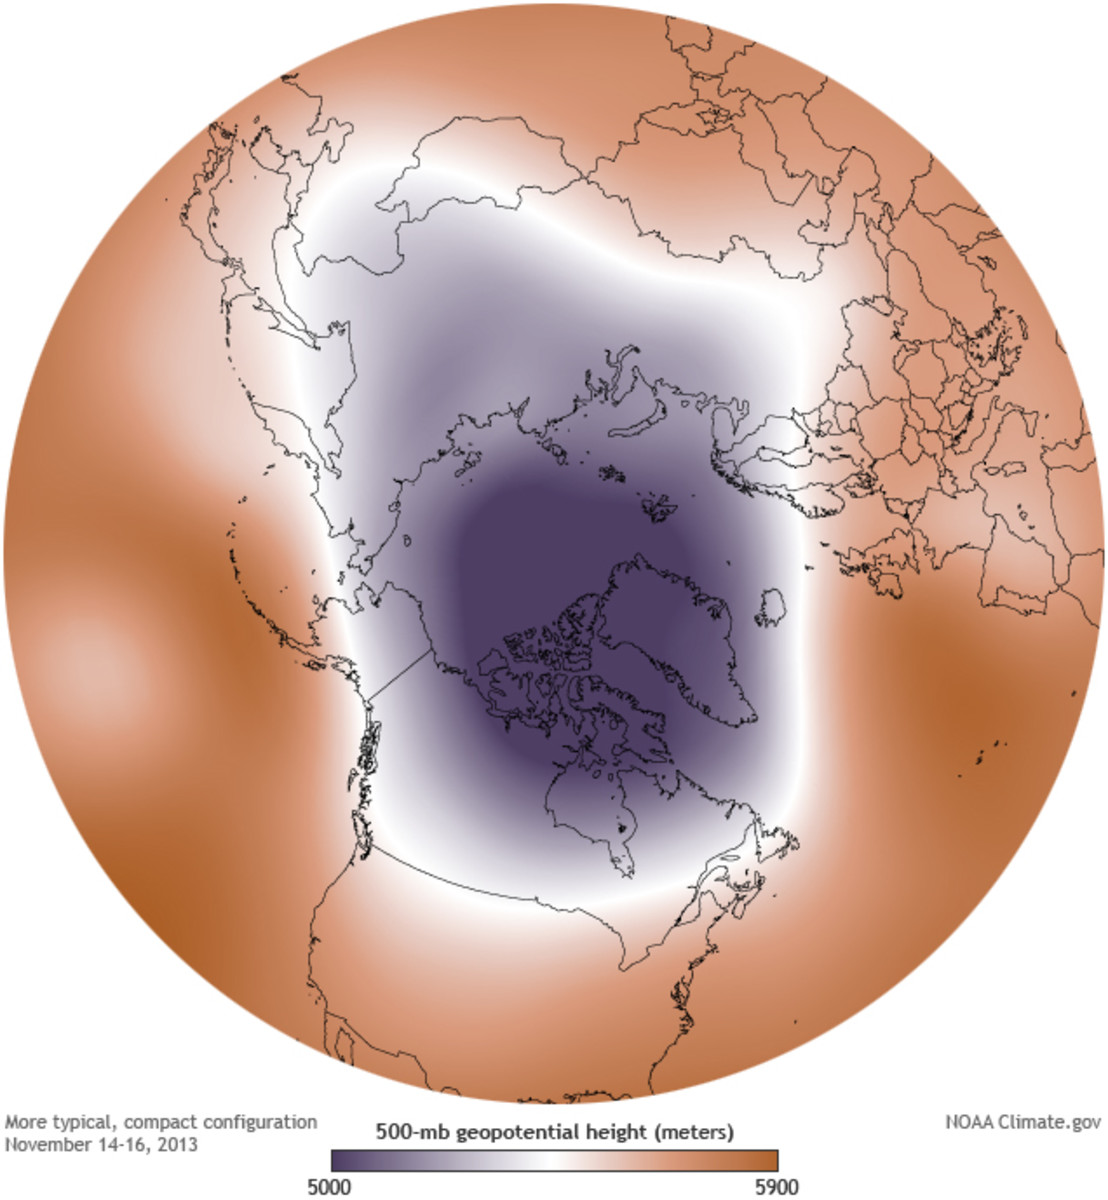 Typical polar vortex configuration.